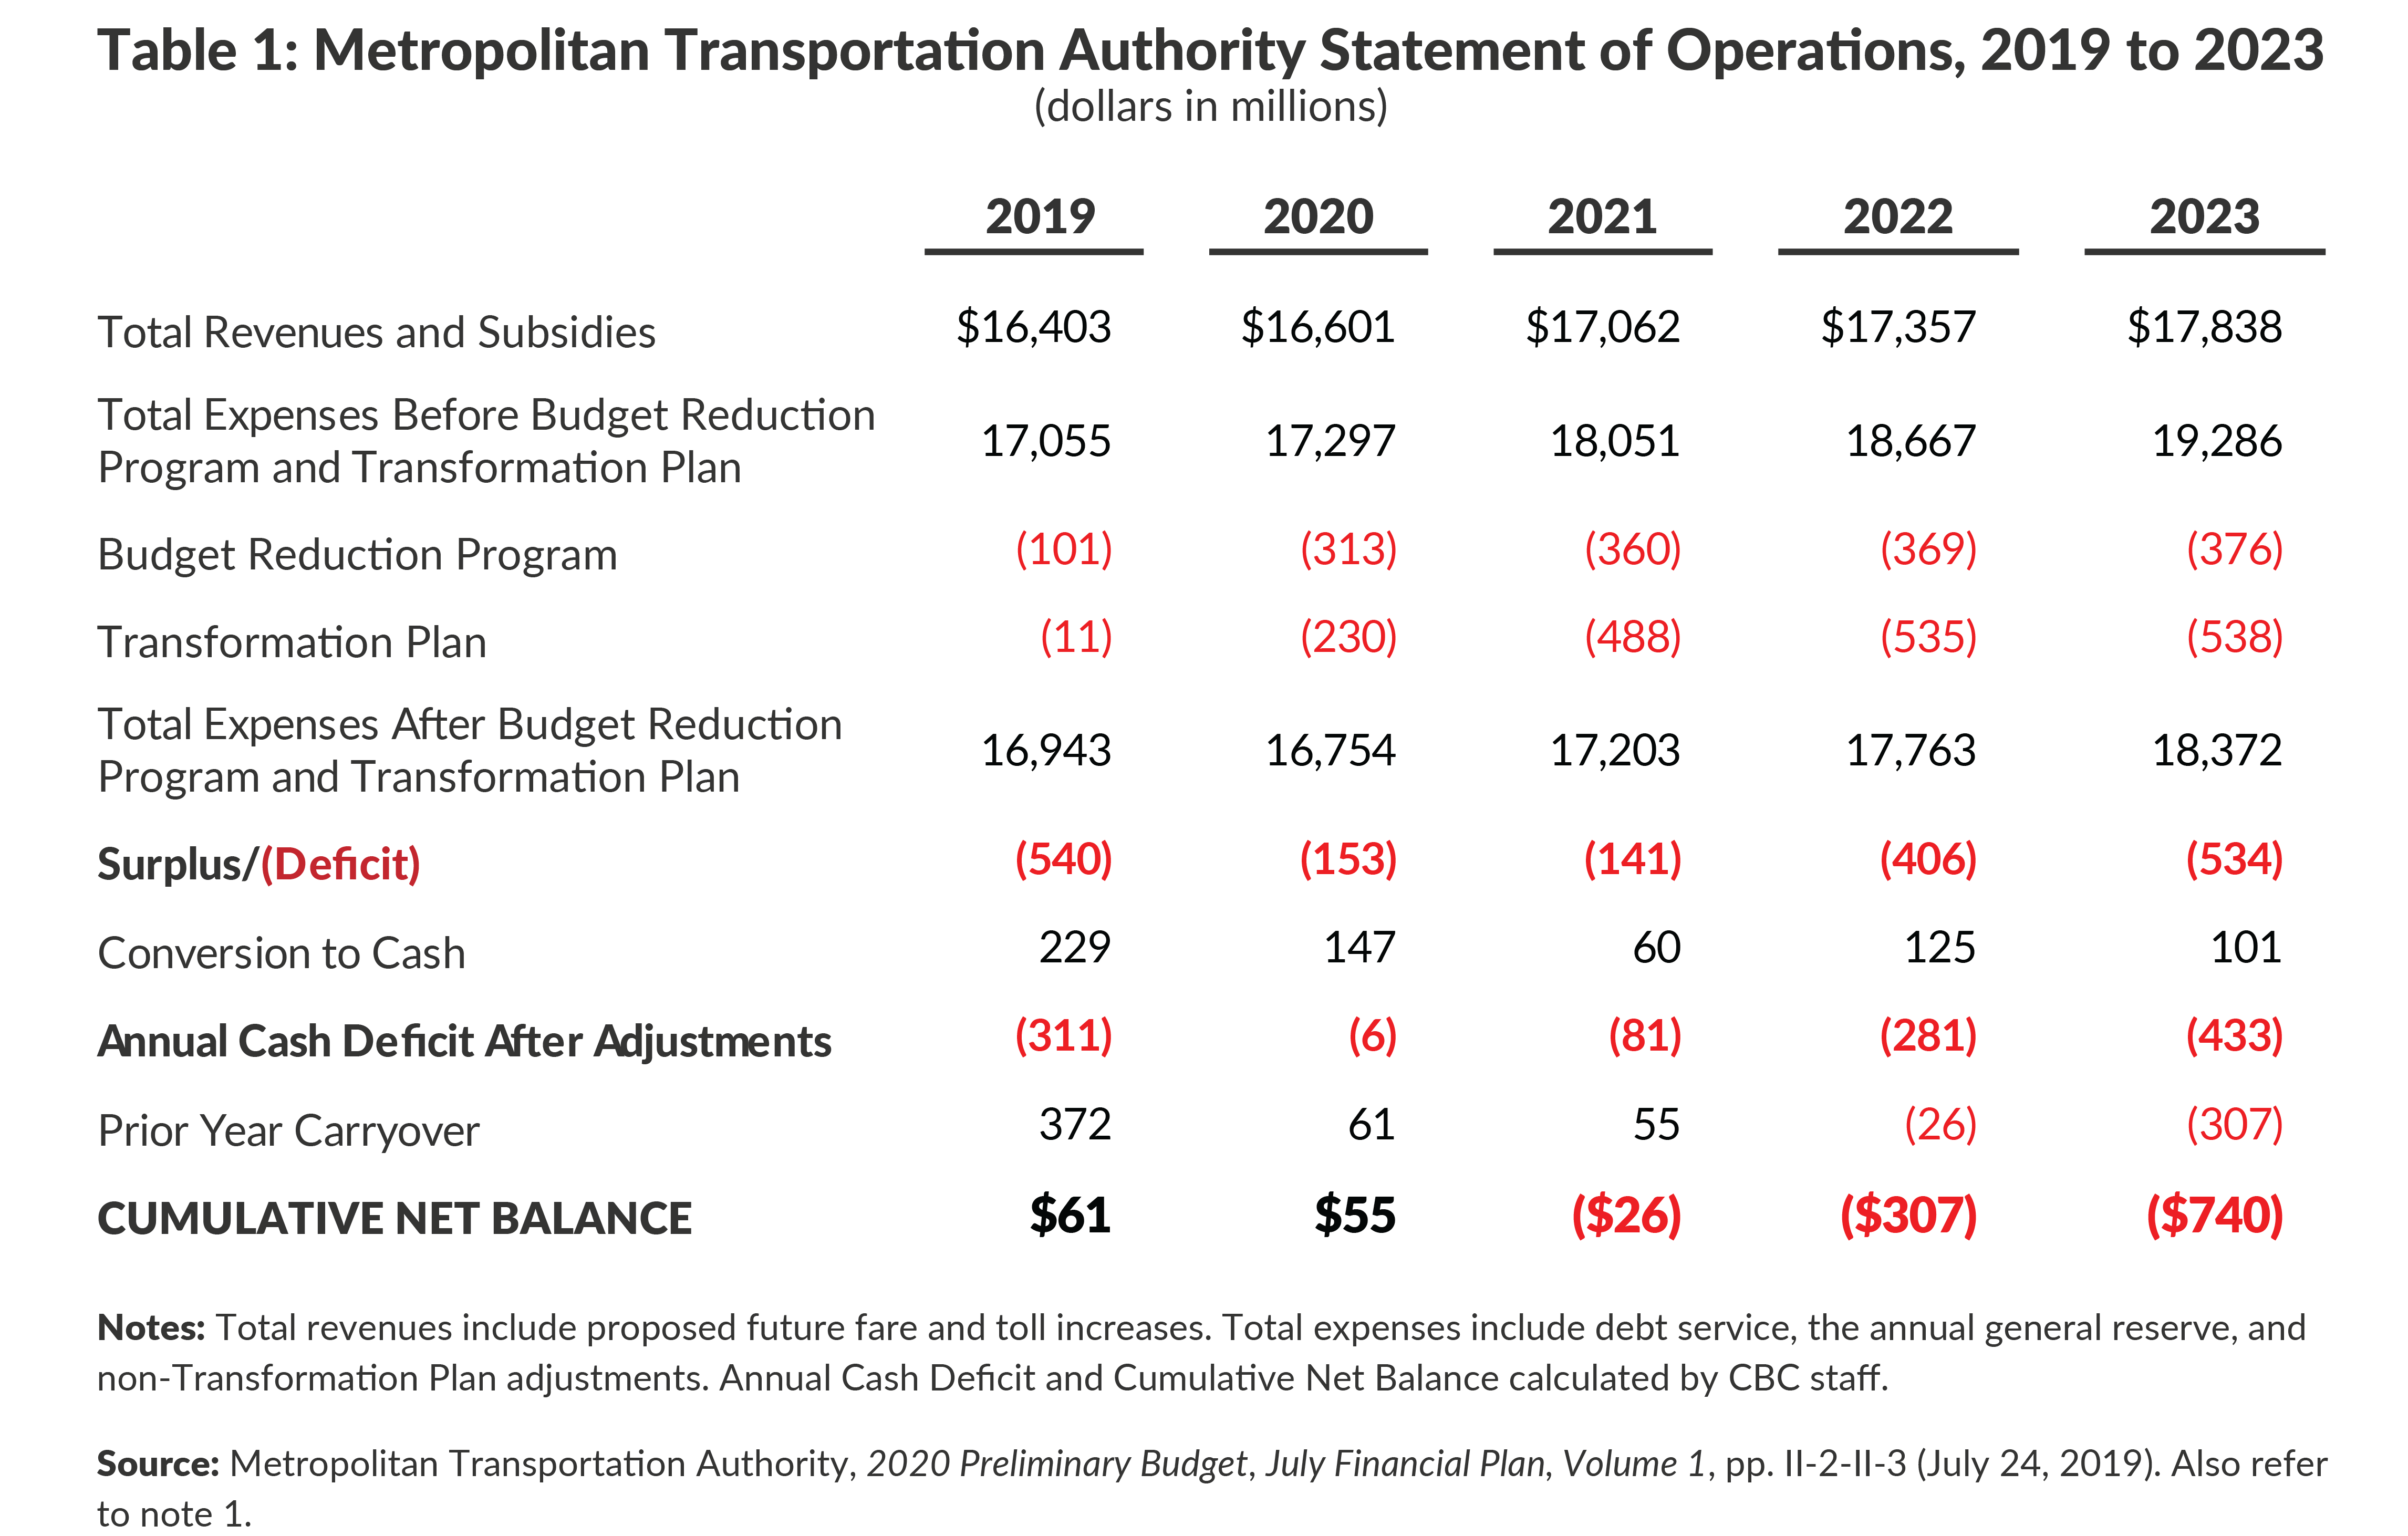 Table 1: Metropolitan Transportation Authority Statement of Operations, 2019 to 2023